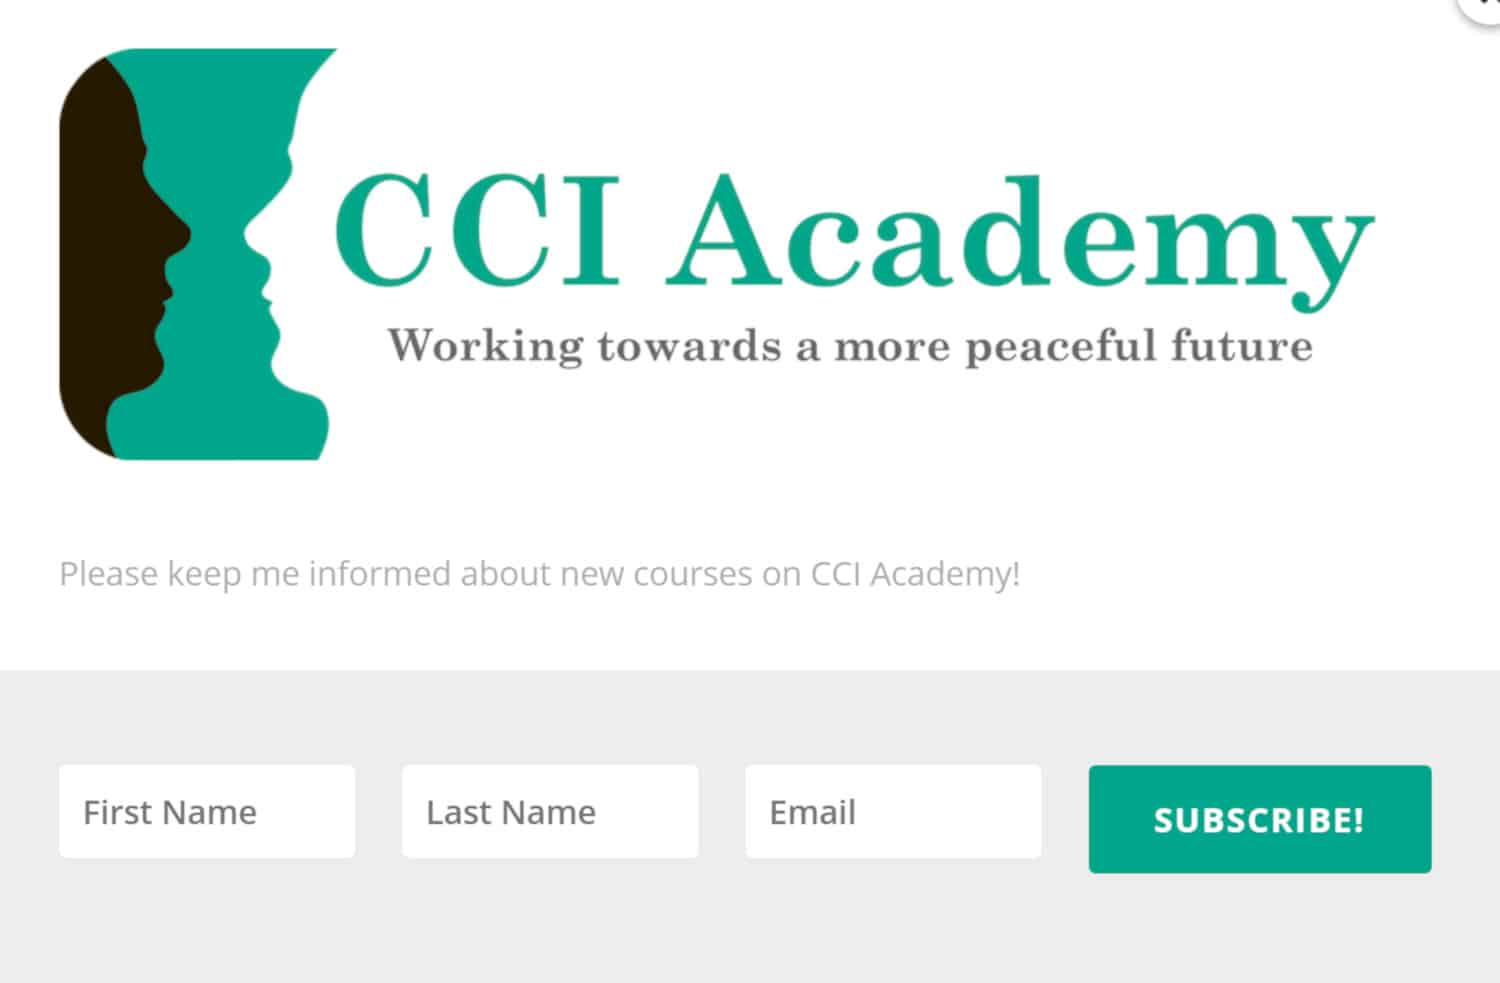 CCI Academy Signup